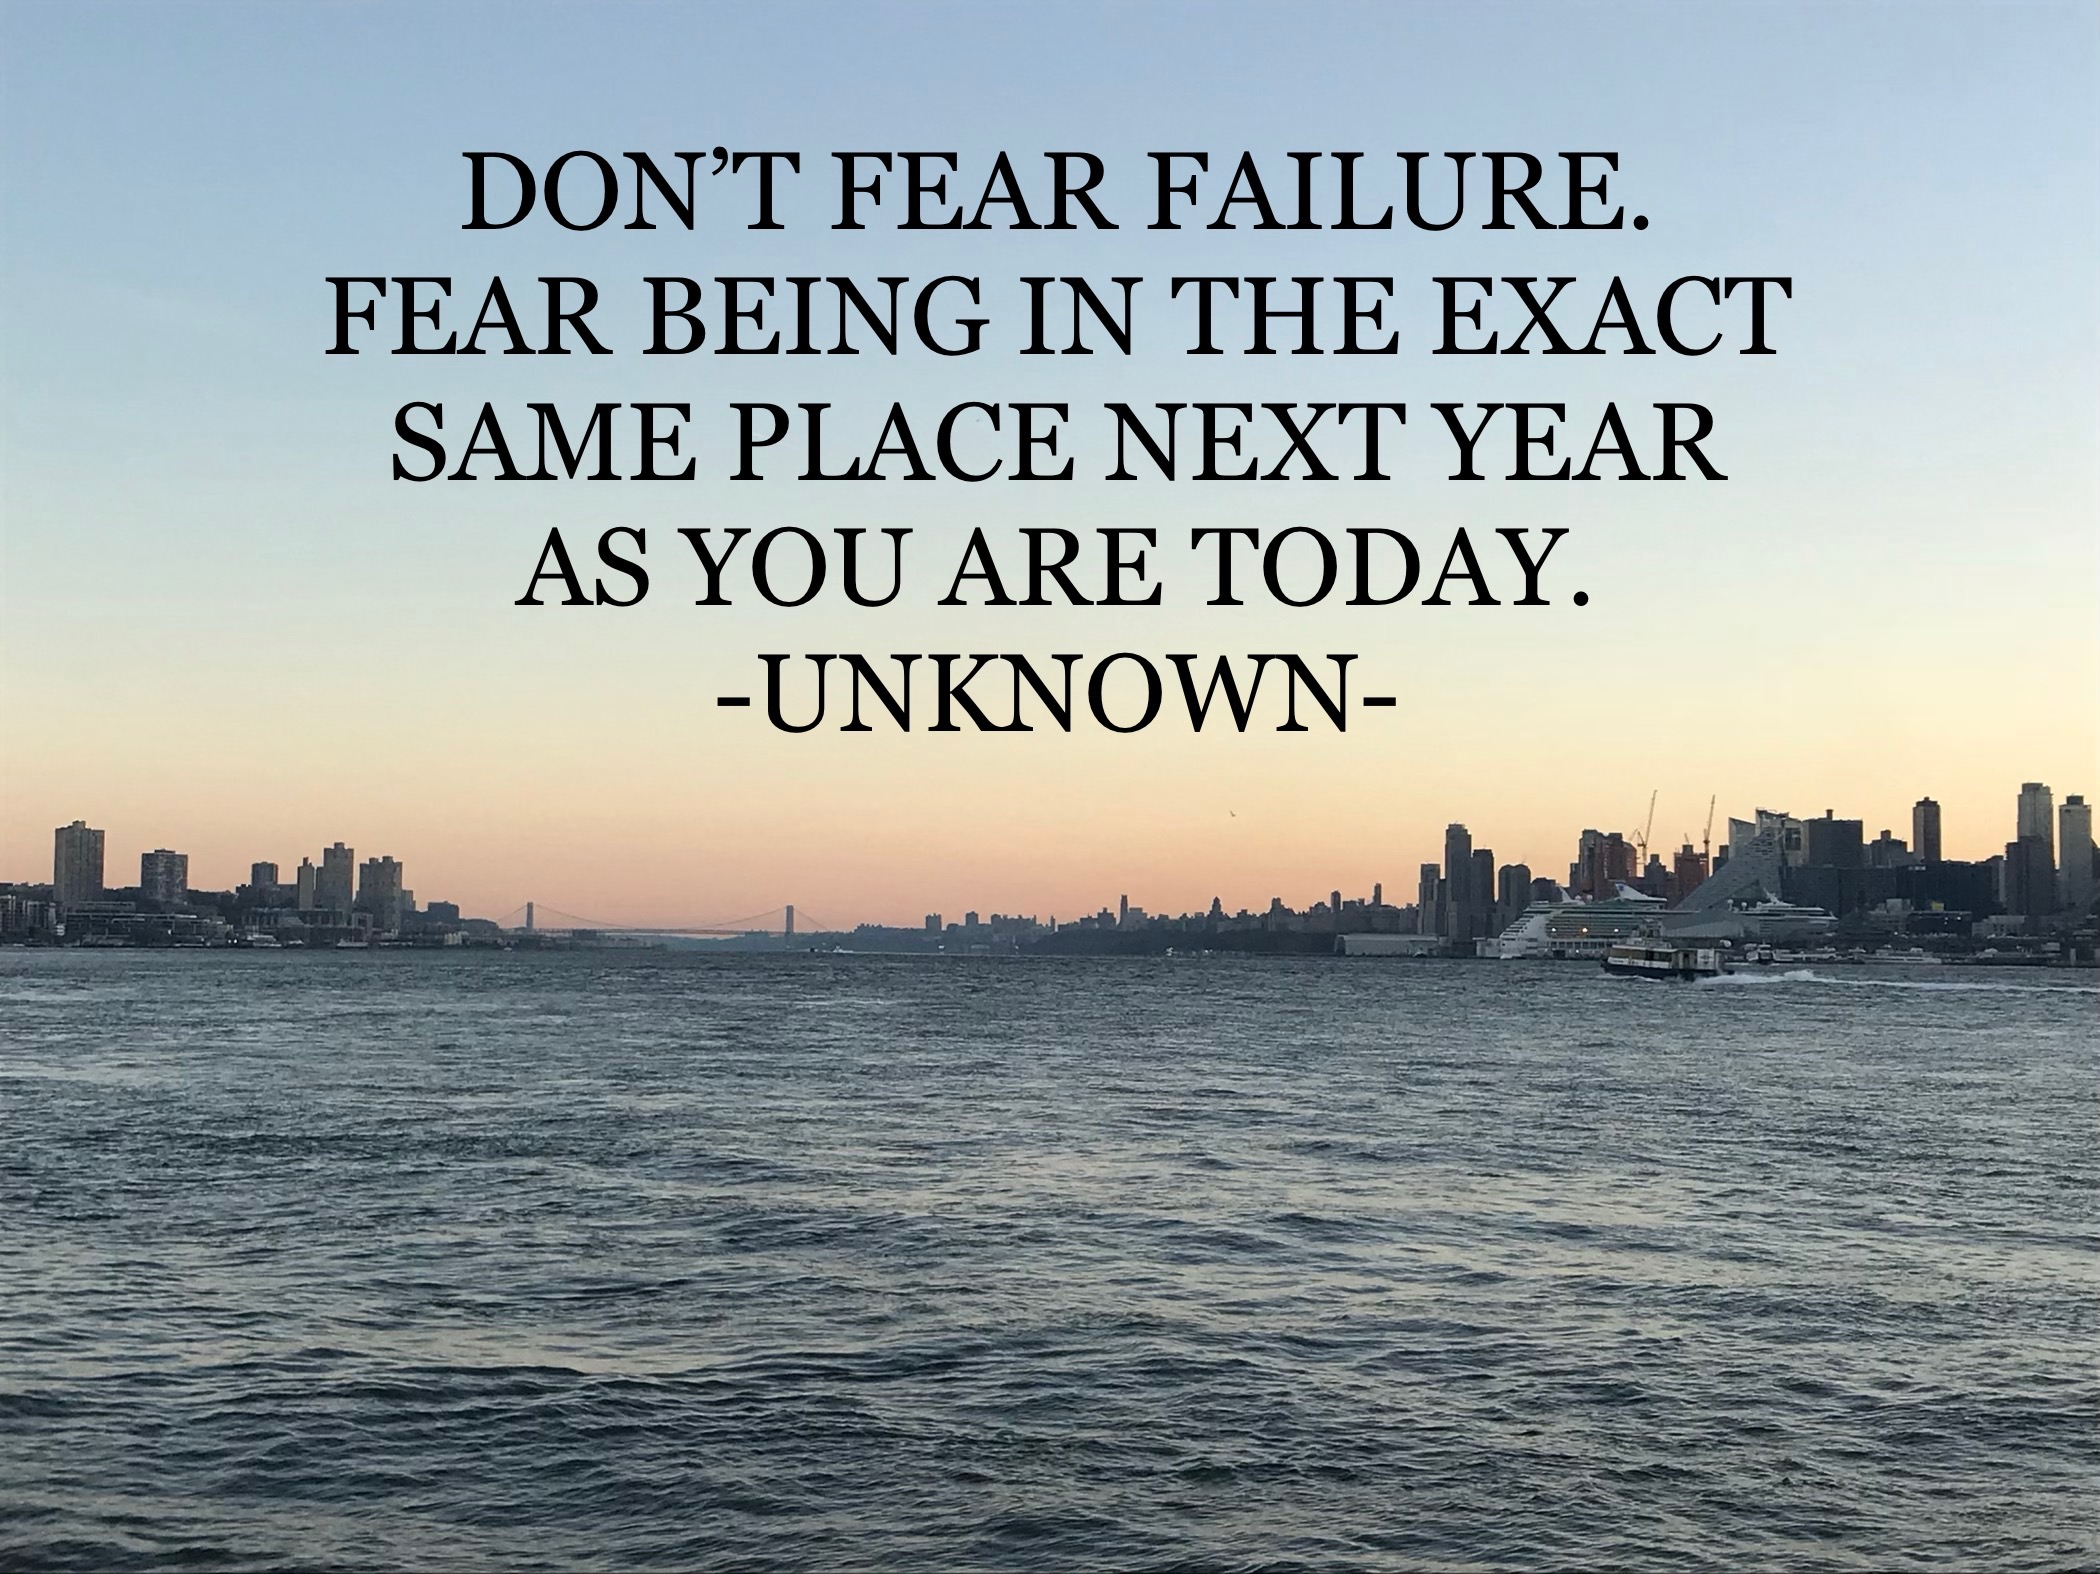 Fear quote.jpg